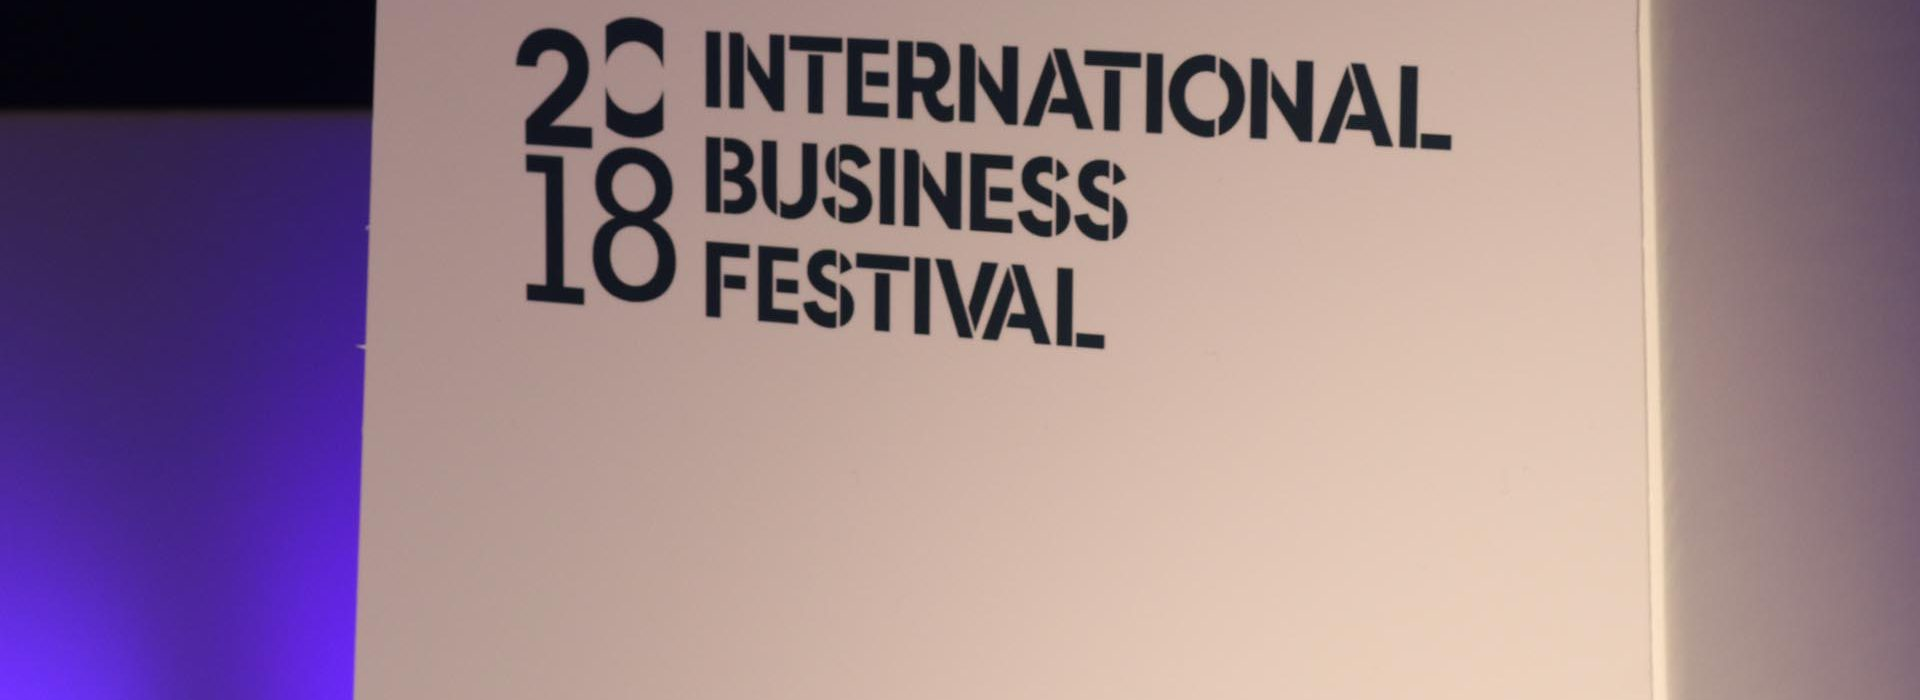 The International Business Festival - Come and join in